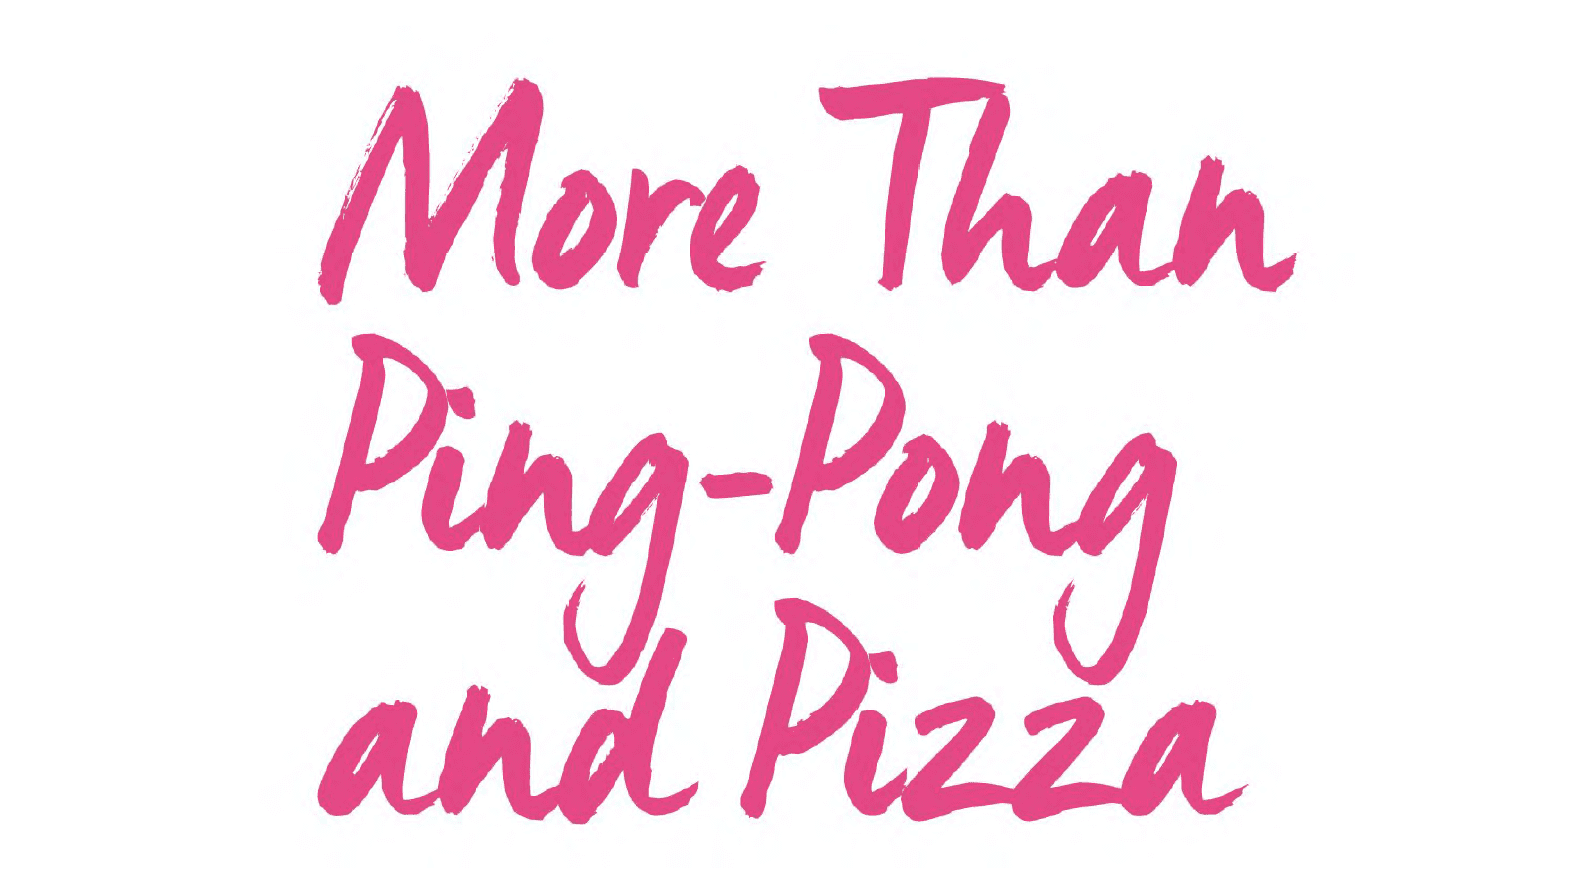 COMPANY CULTURES PEOPLE LOVE - more than ping pong and pizza